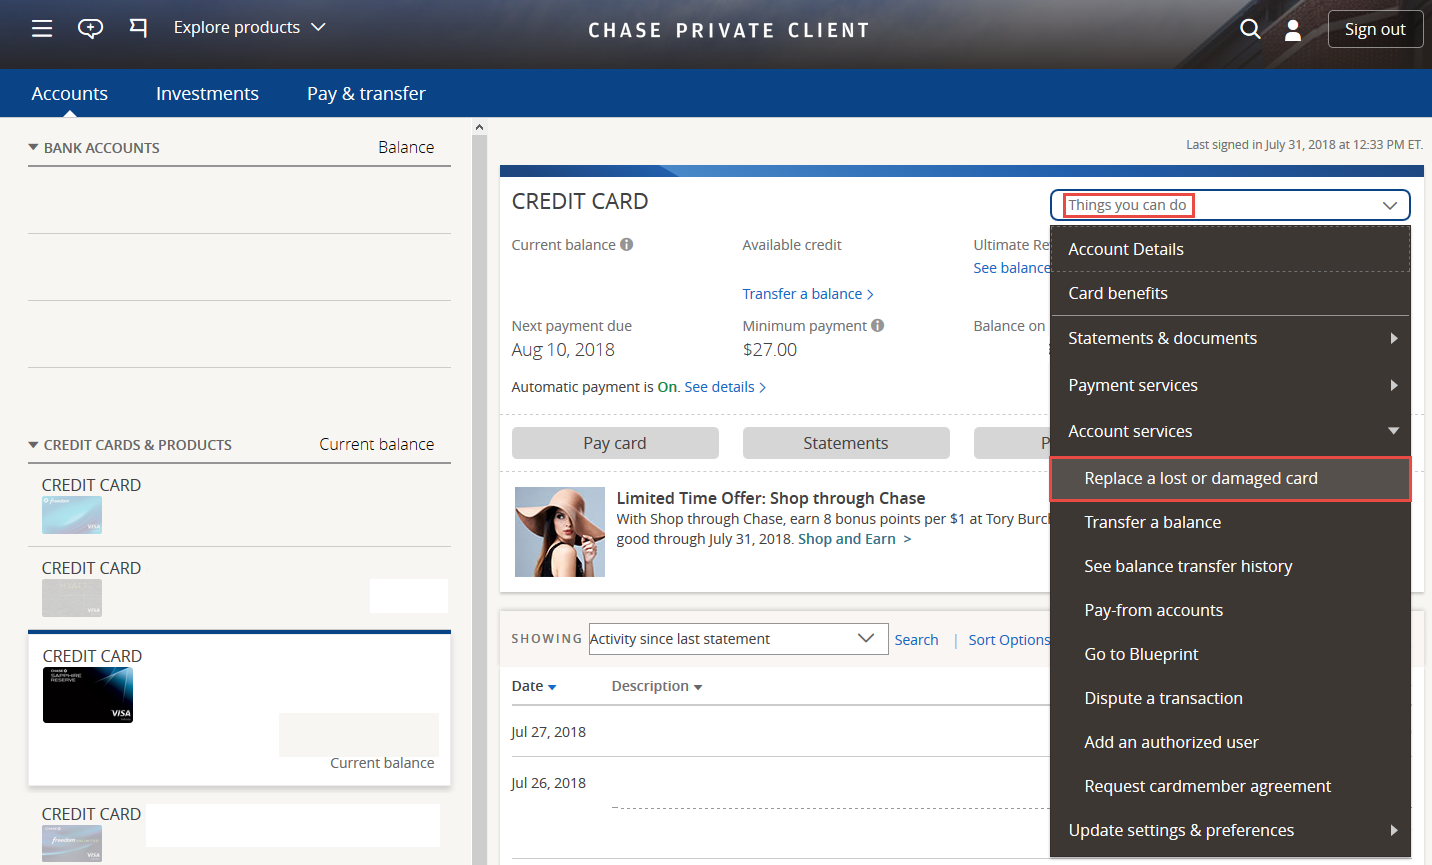 How to Request a Replacement Chase Credit Card [Step-by-Step]